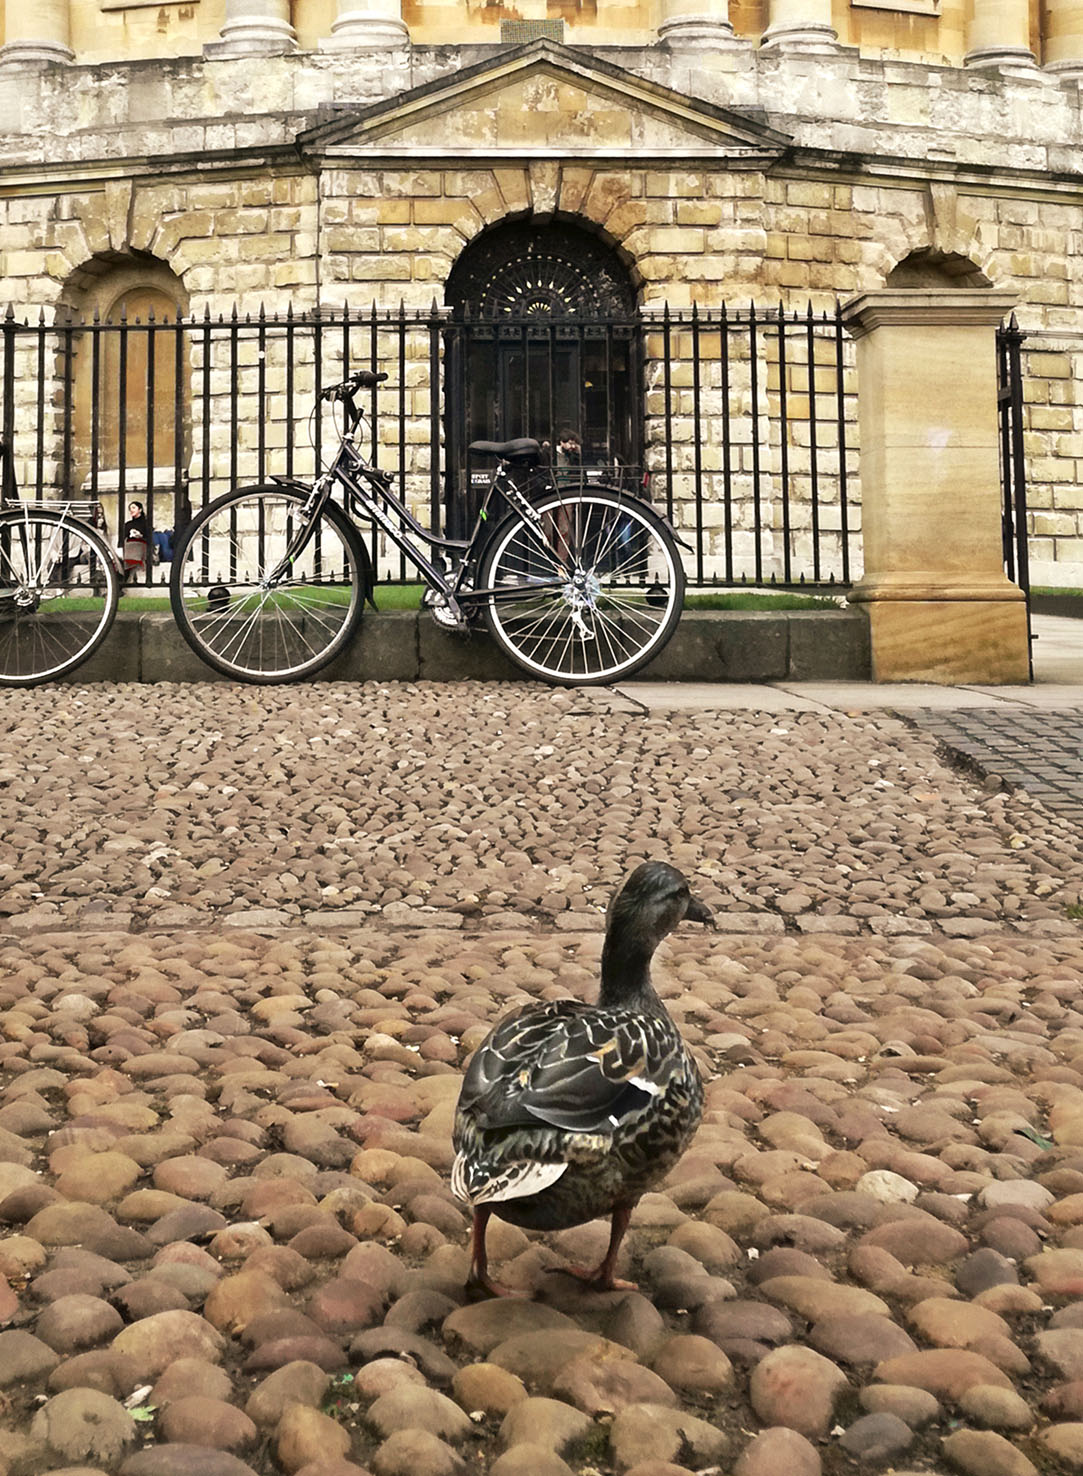 A photograph of a mallard duck outside the Radcliffe Camera